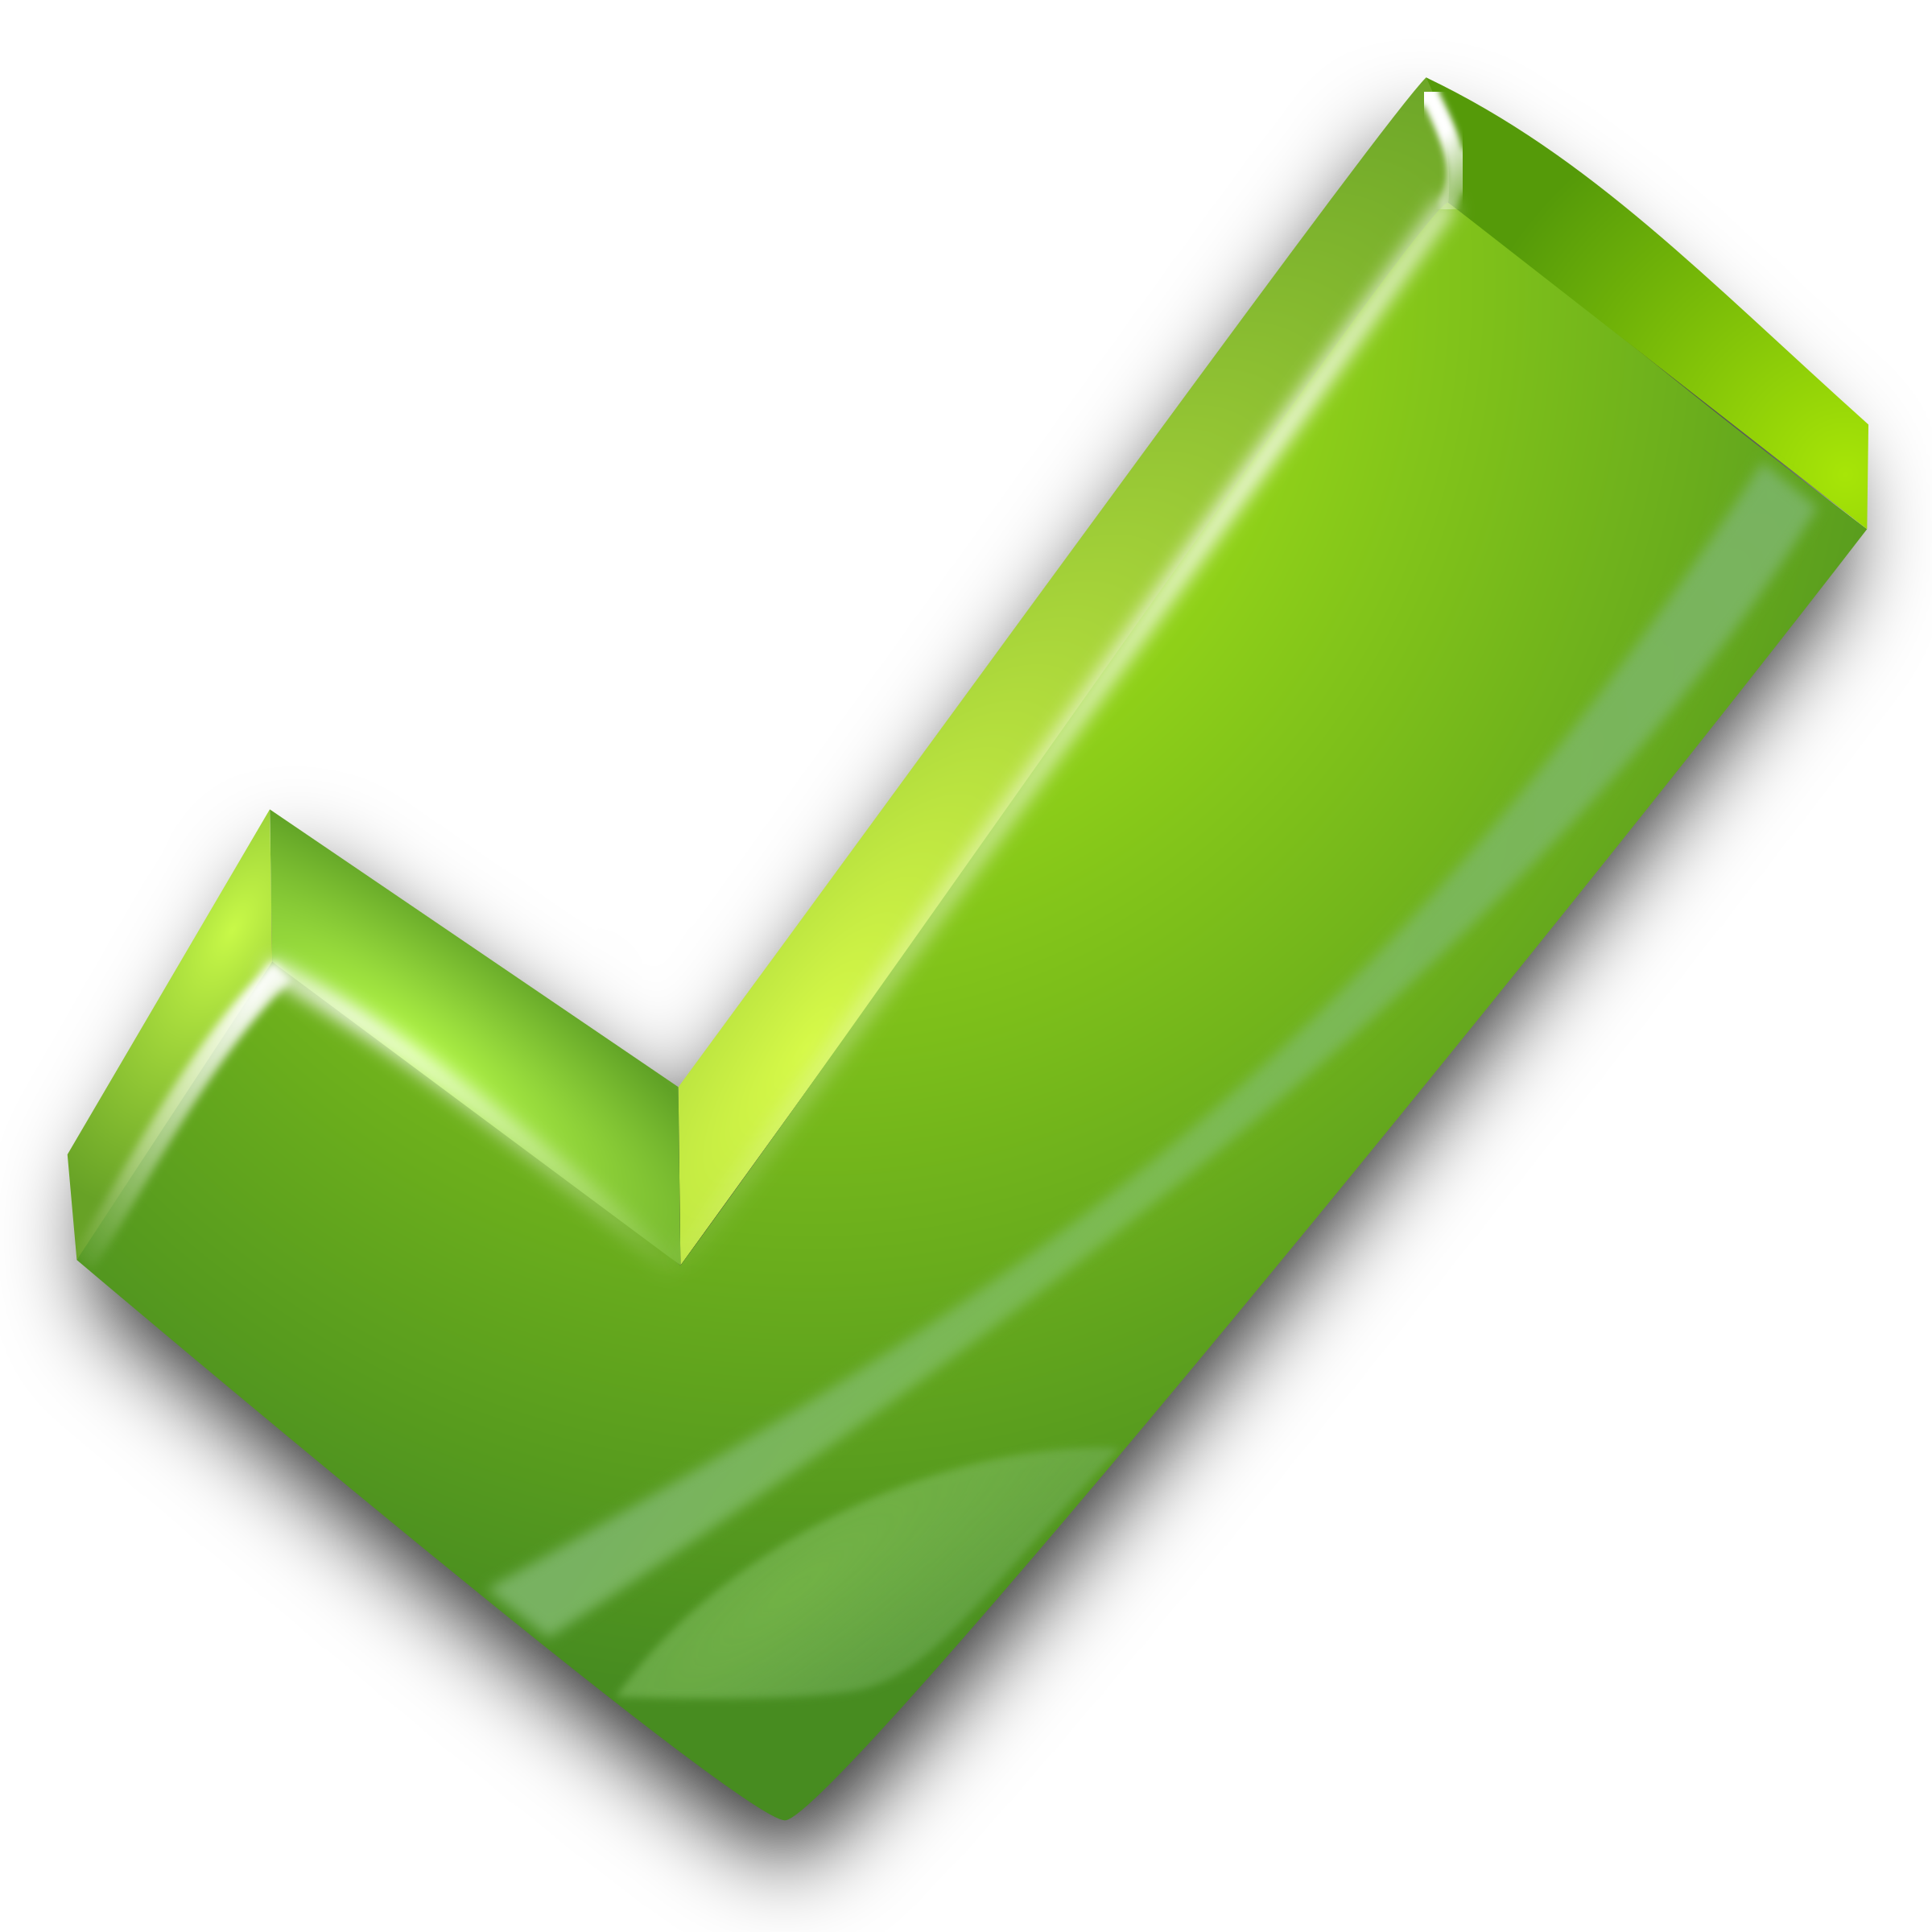 Green Tick Png Photo - Tick Mark, Transparent background PNG HD thumbnail